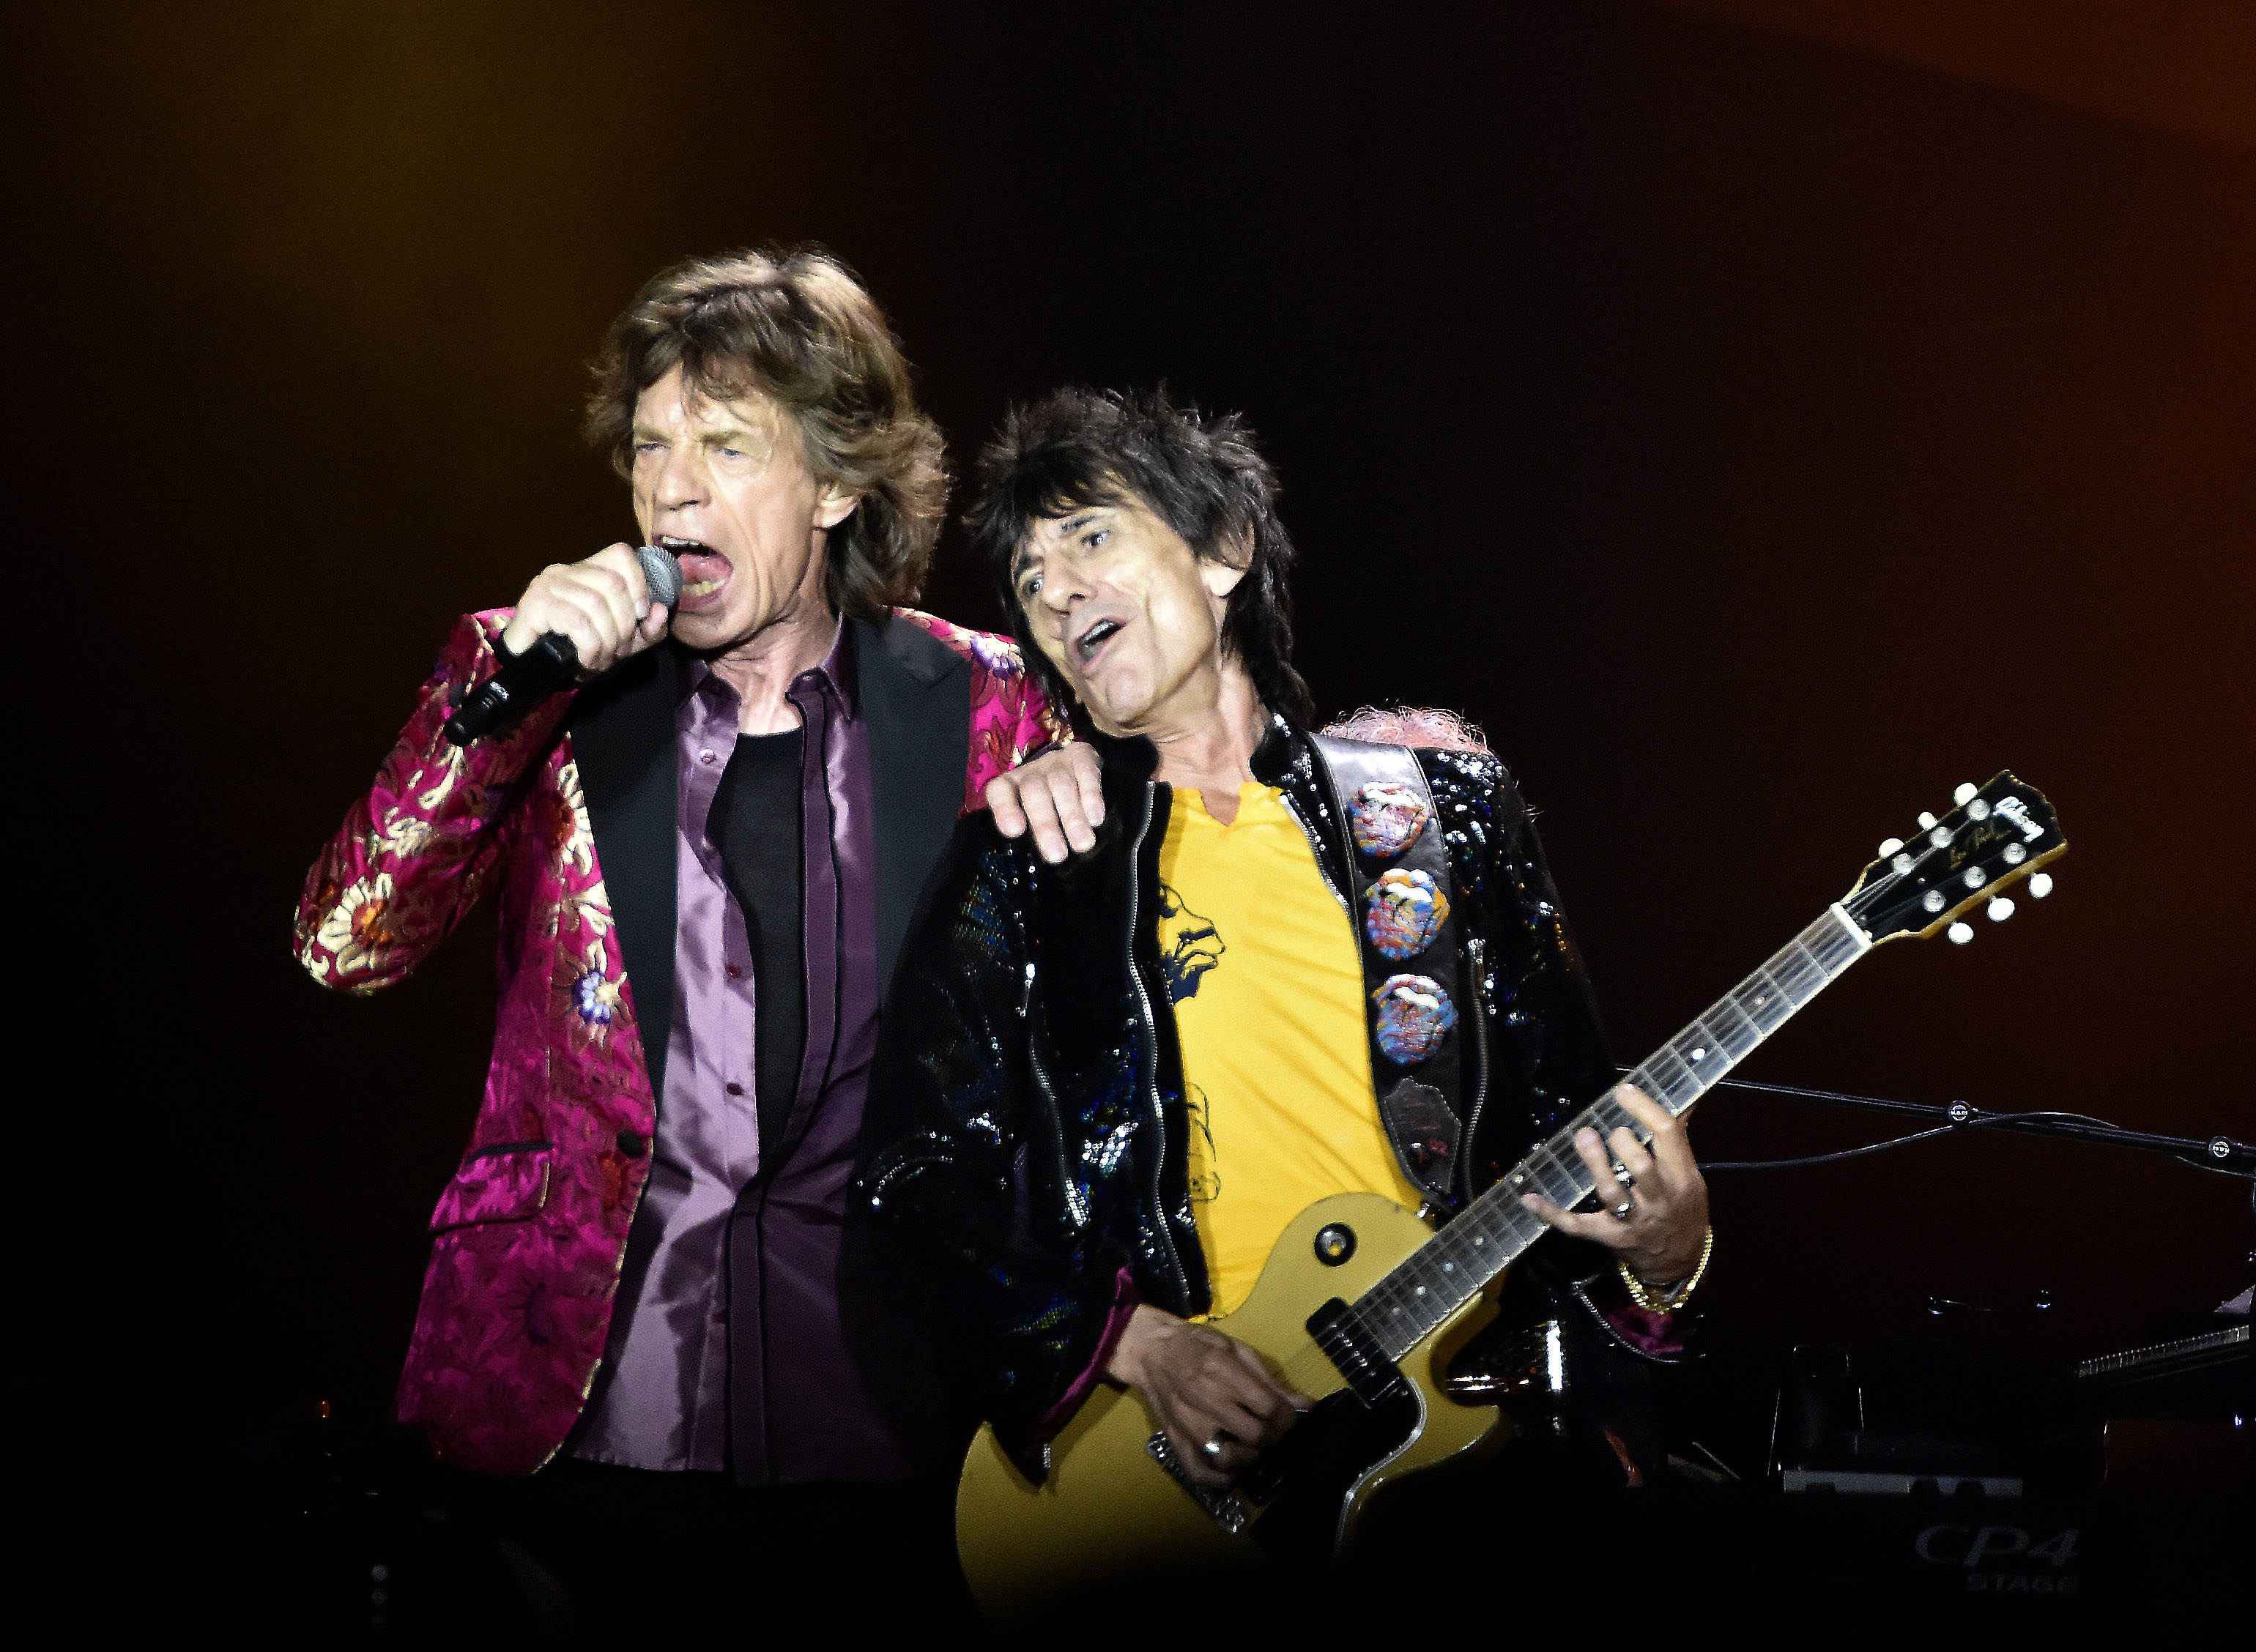 The Rolling Stones' Mick Jagger and Ronnie Wood perform on stage at the Citrus Bowl in Orlando, Florida, June 12,  2015. This is one of 15 stops in the Stones 2015 North American stadium tour. Band members are Mick Jagger,  Keith Richards,  Charlie Watts, and Ronnie Wood.    Photo by Gary I Rothstein /UPI / eyevine Contact eyevine for more information about using this image: T: +44 (0) 20 8709 8709 E: info@eyevine.com http://www.eyevine.com *** Local Caption *** 01552468